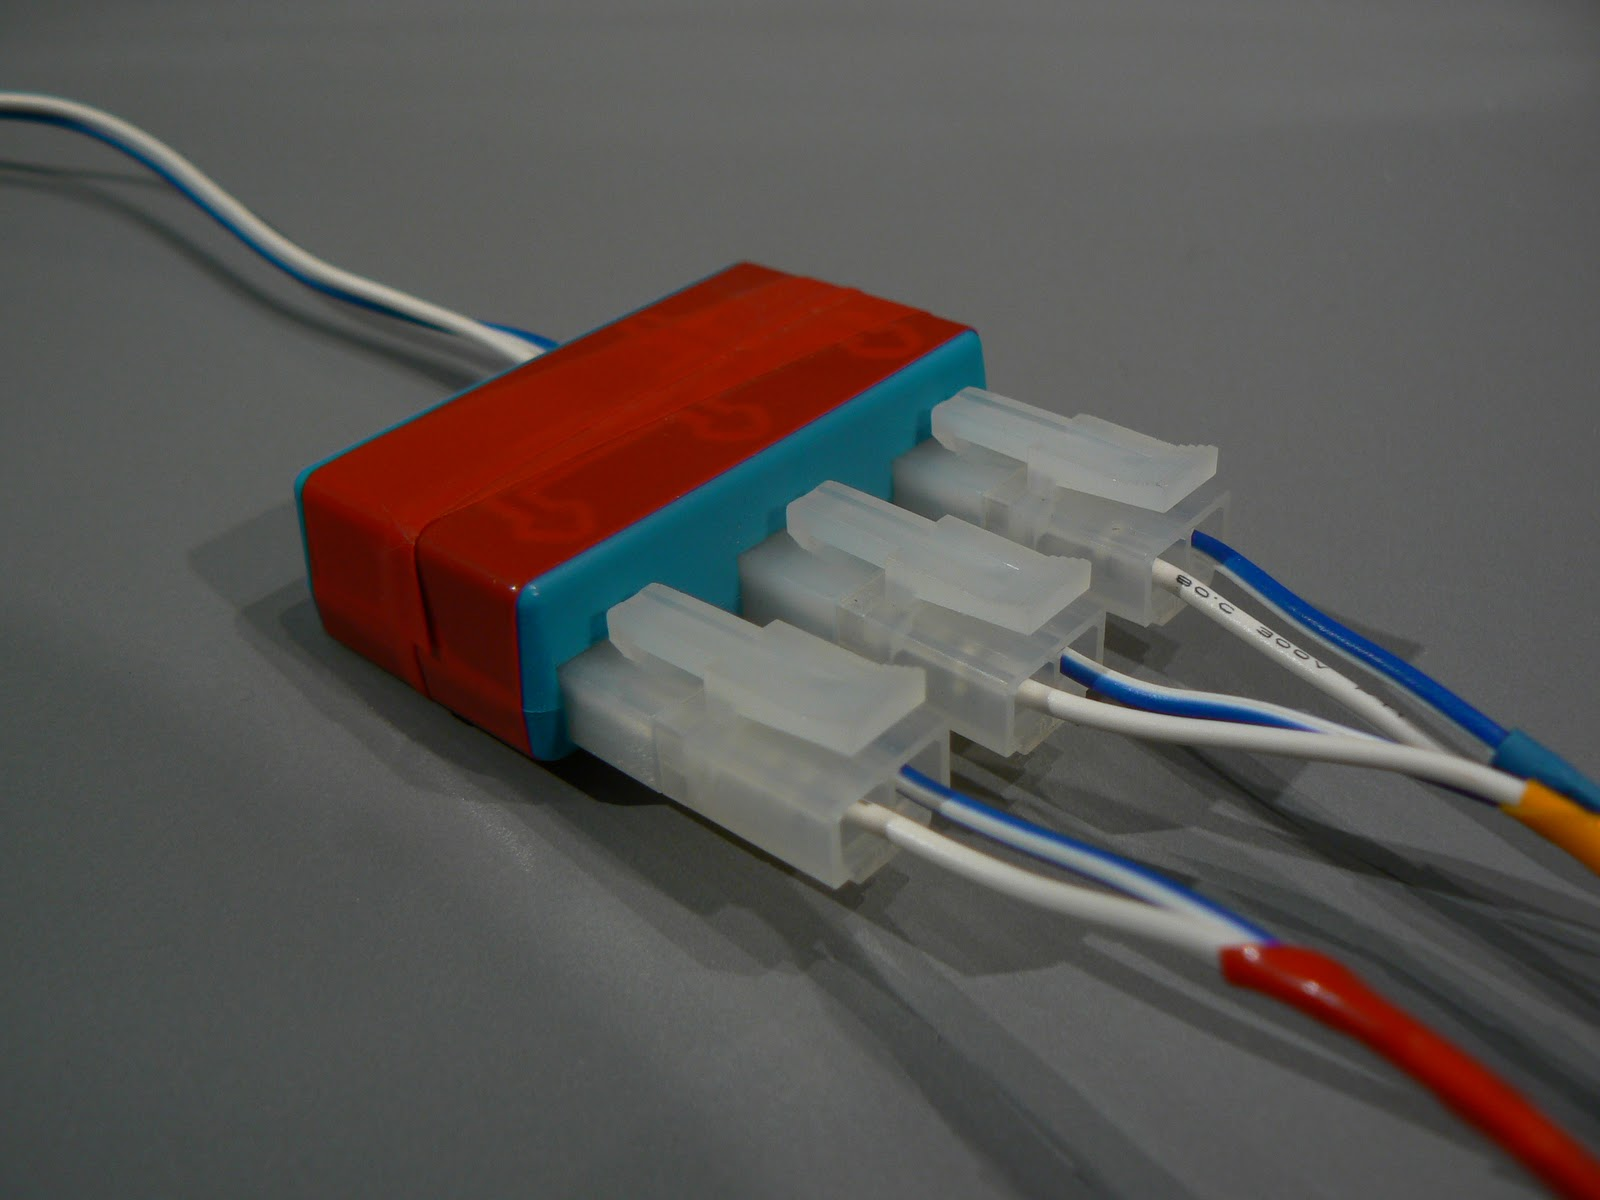 dcc wiring model railway  dcc  get free image about wiring